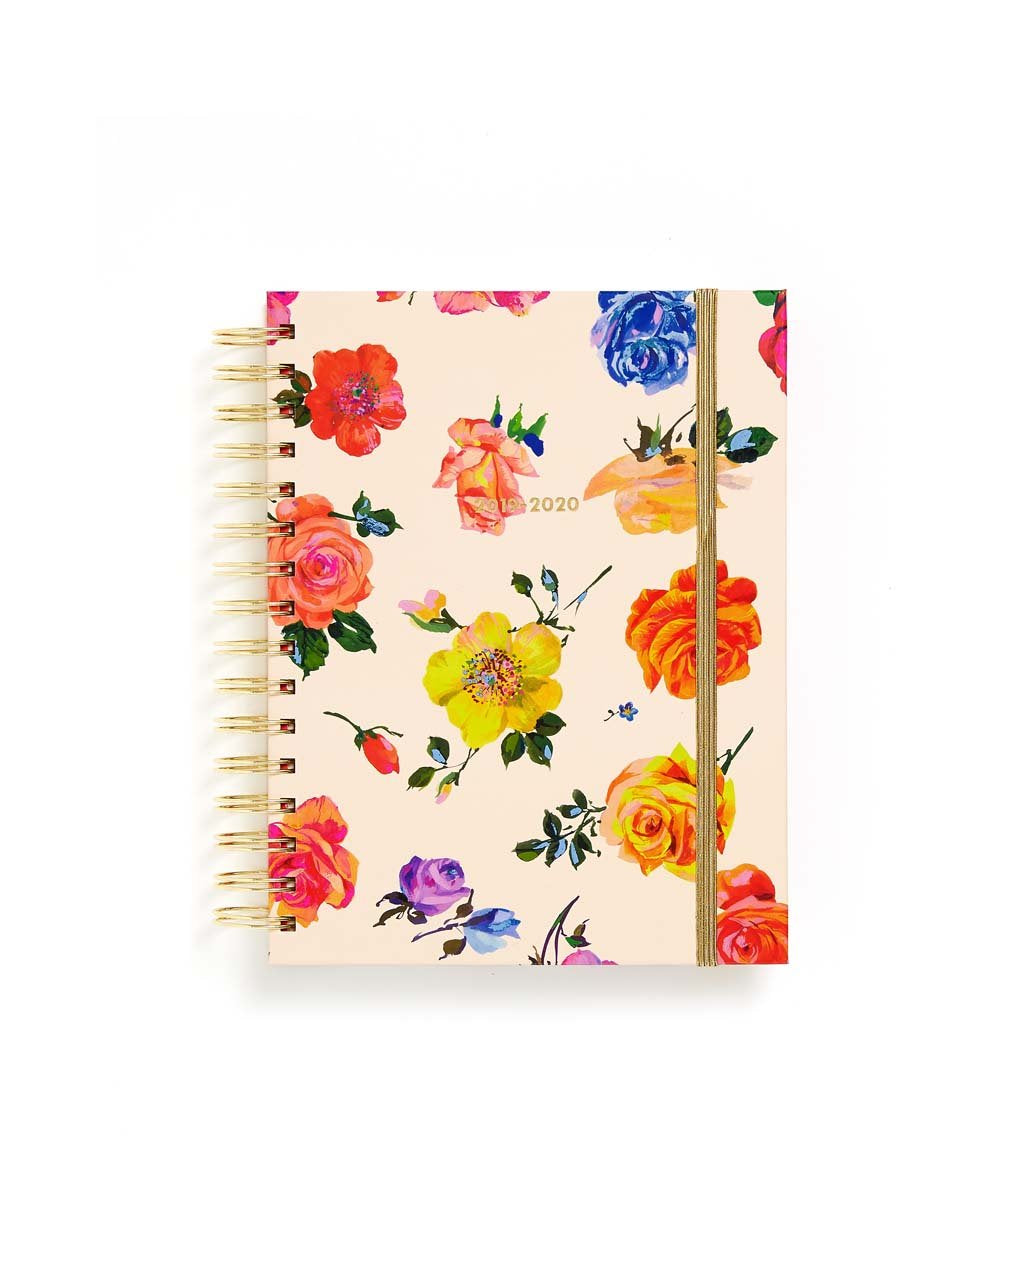 This Medium 17-Month Annual Planner comes in a colorful floral design.